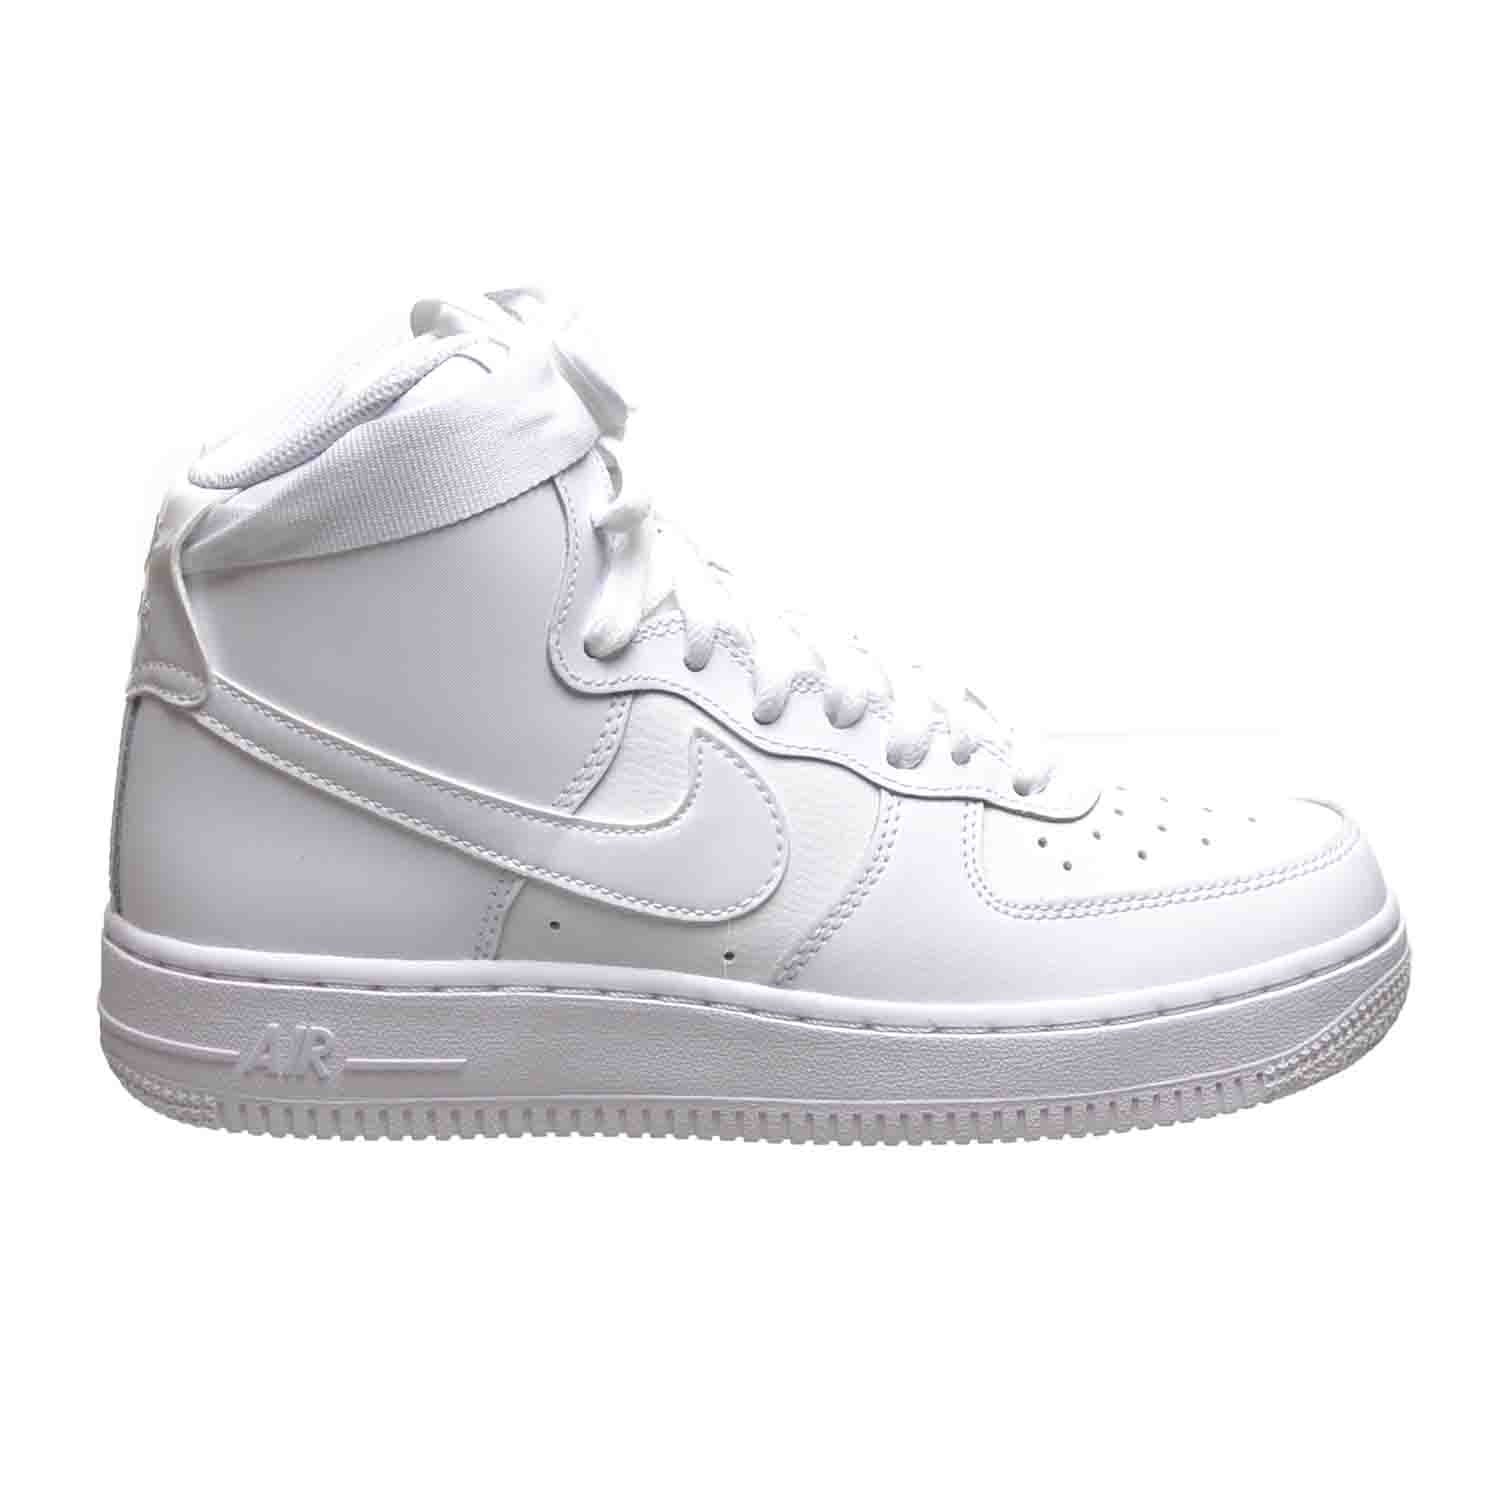 Nike Air Force 1 High (GS) Big Kids Shoes White 653998-100 (6.5 M US) by NIKE